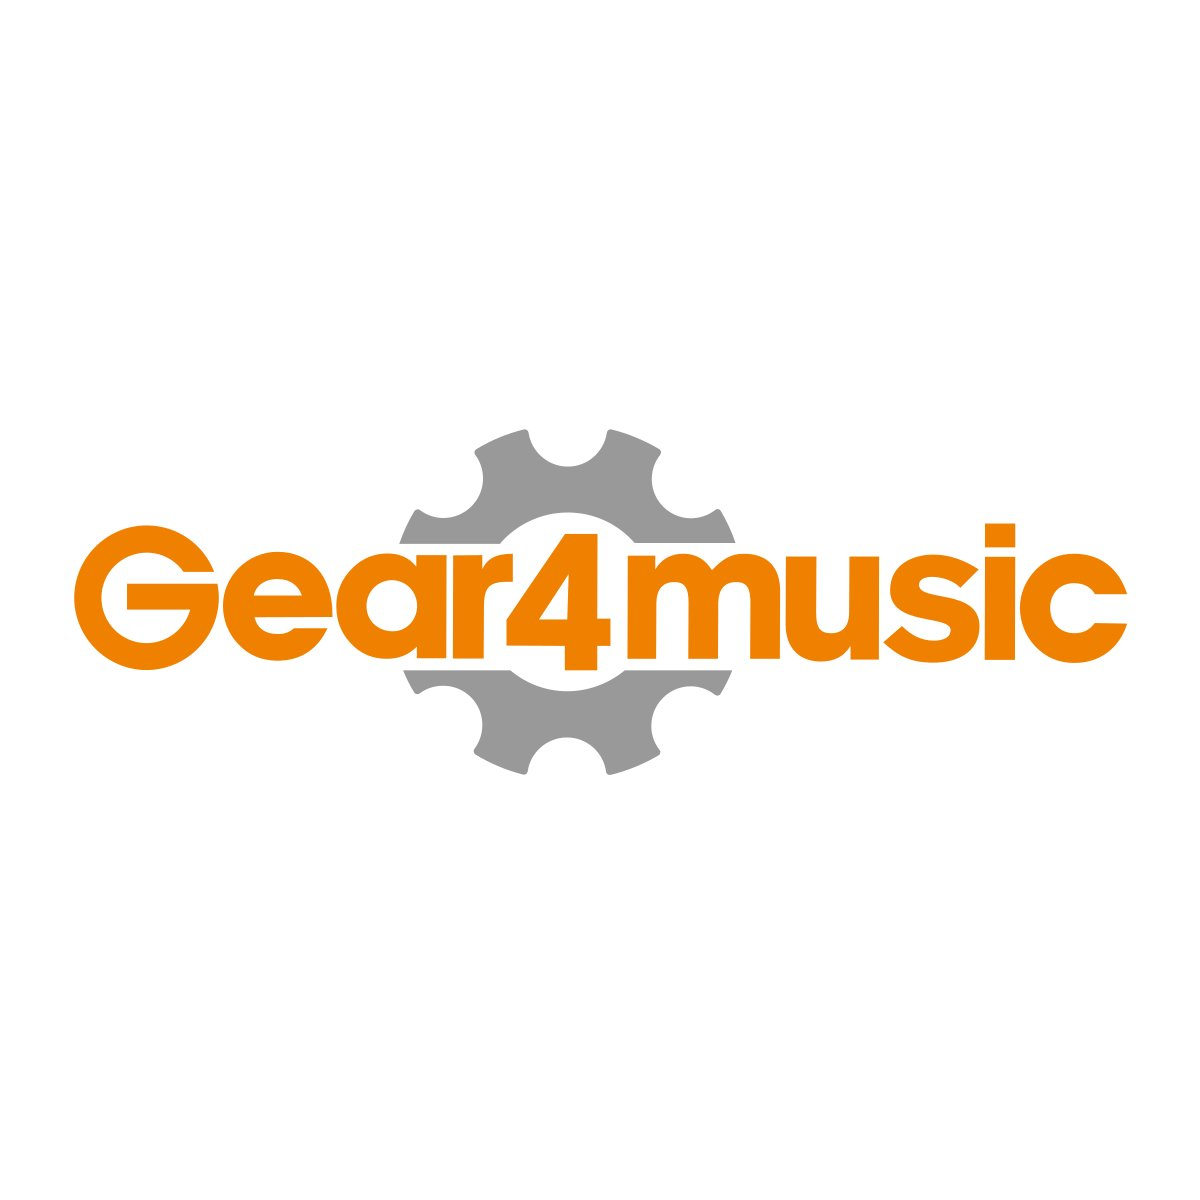 3/4 Studieviool van Gear4music, Wit